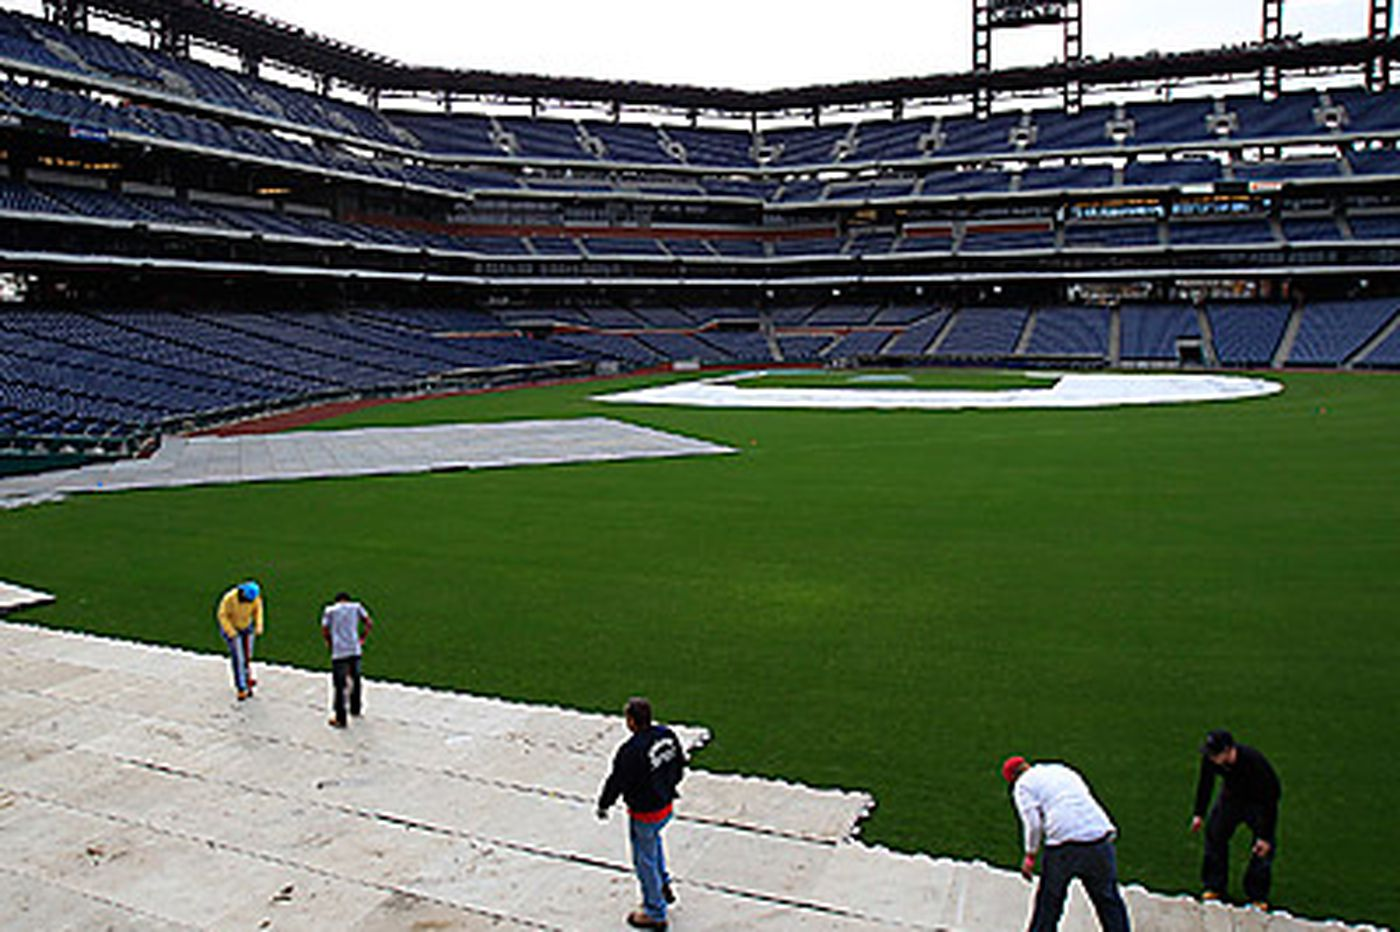 Flyers & Rangers going skating in Citizens Bank Park